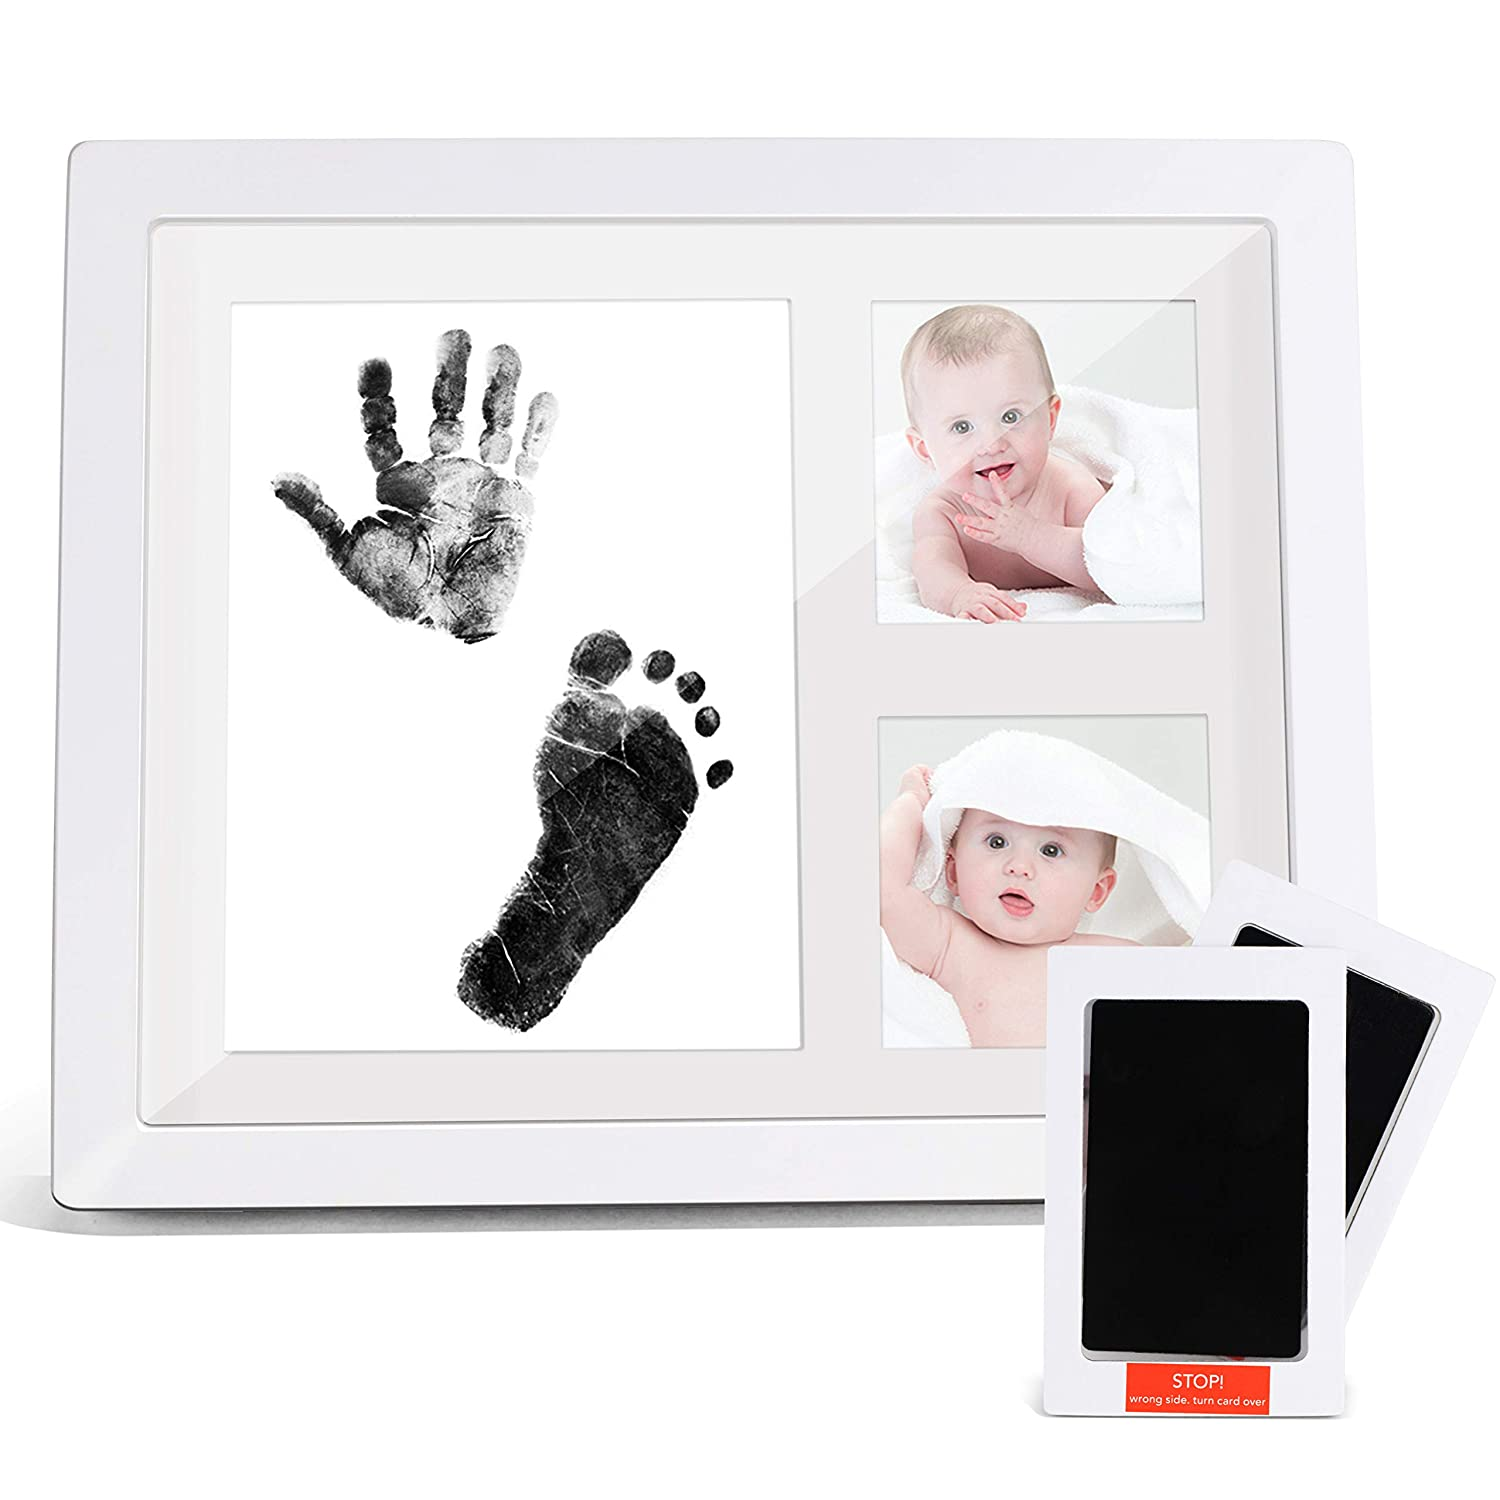 Baby Handprint Kit, Sungwoo Baby Footprint Kit Picture Frame with 2 Ink Pads, Baby Photo Album Keepsake Frames for Newborn Girls & Boys Shower Registry, Personalized Baby Gifts